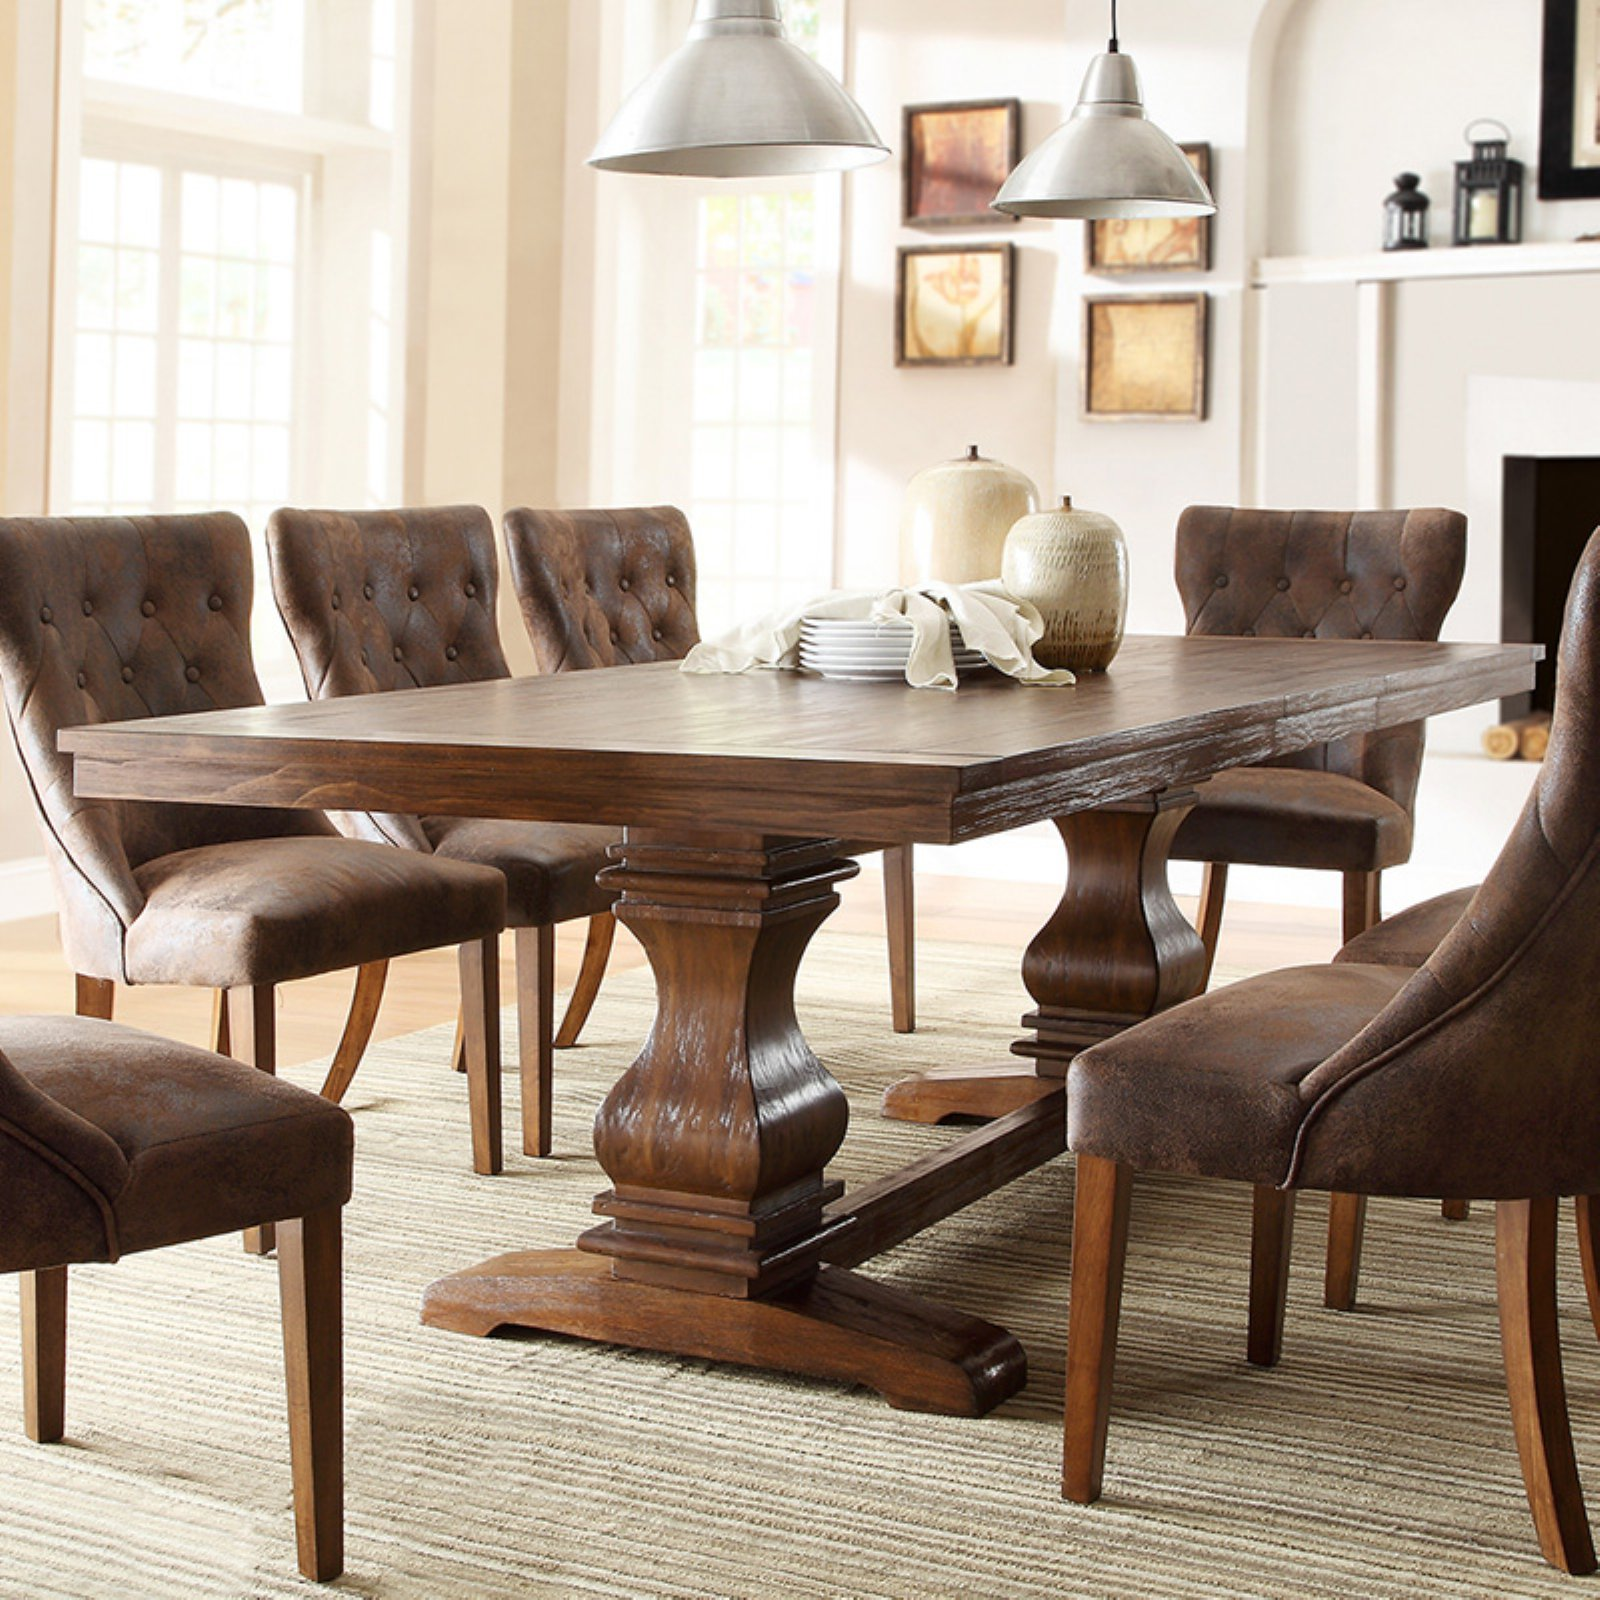 Weston Home Marie Louise Expandable Trestle Dining Table - Weathered Oak